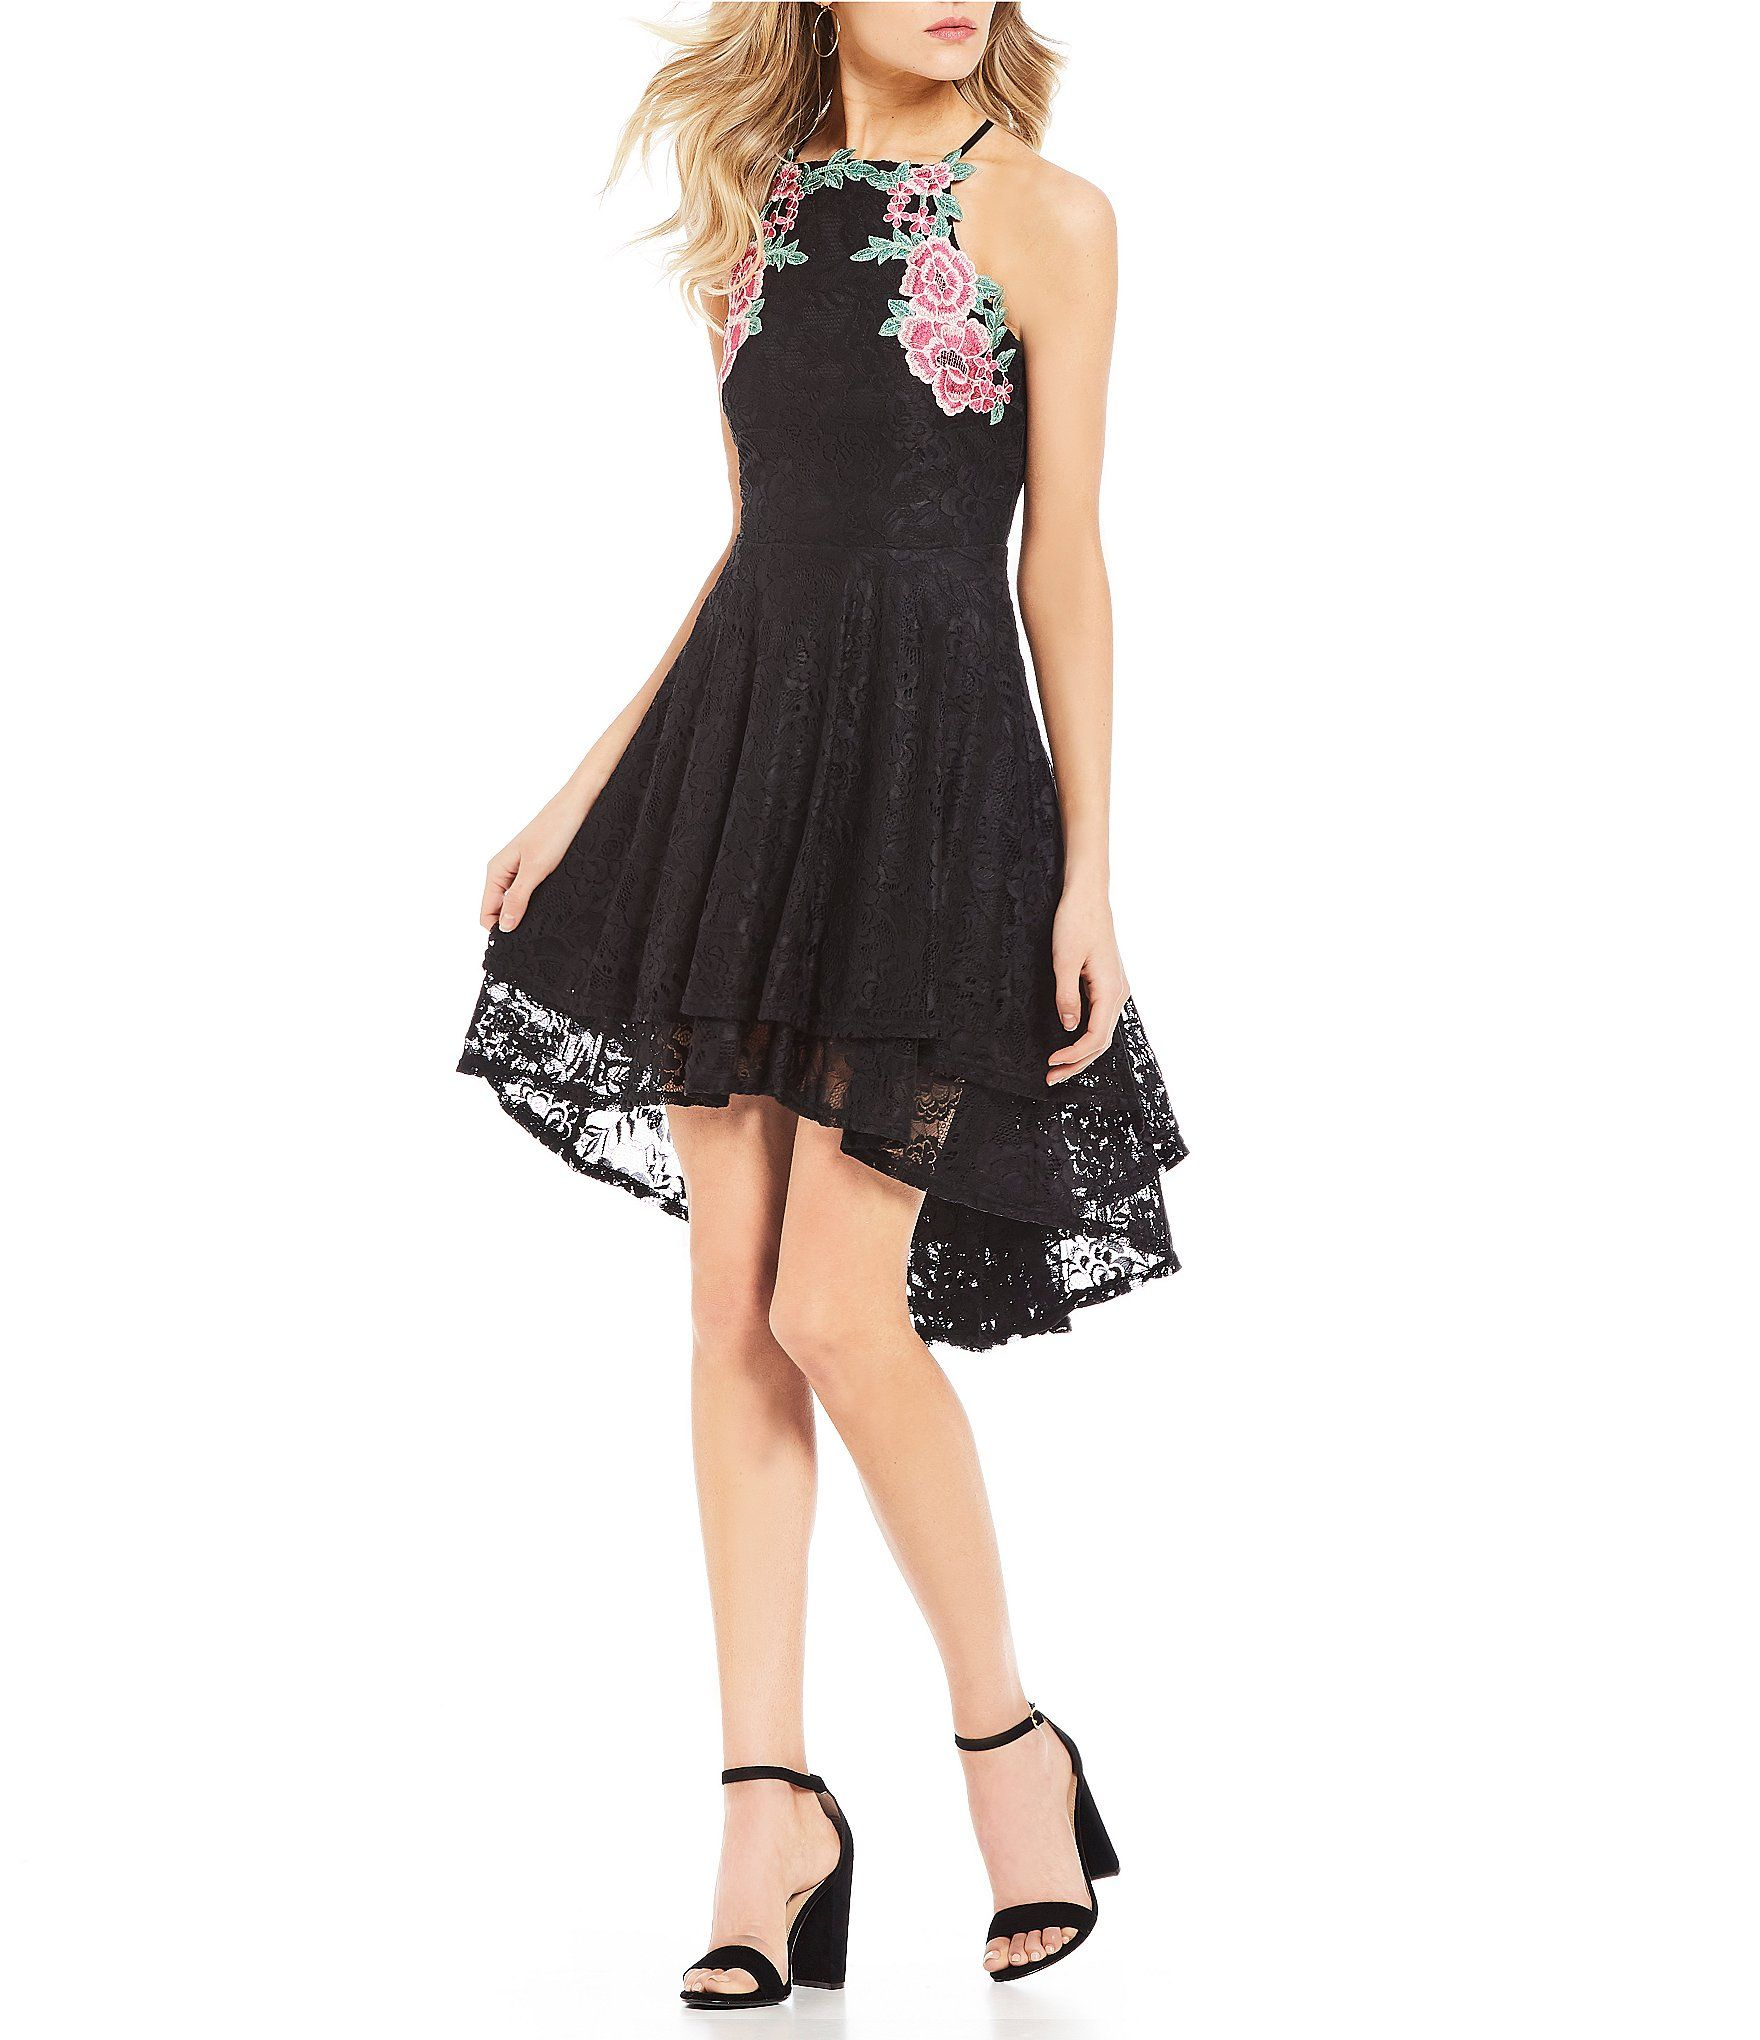 Shop for jodi kristopher floral embroidered lace highlow dress at